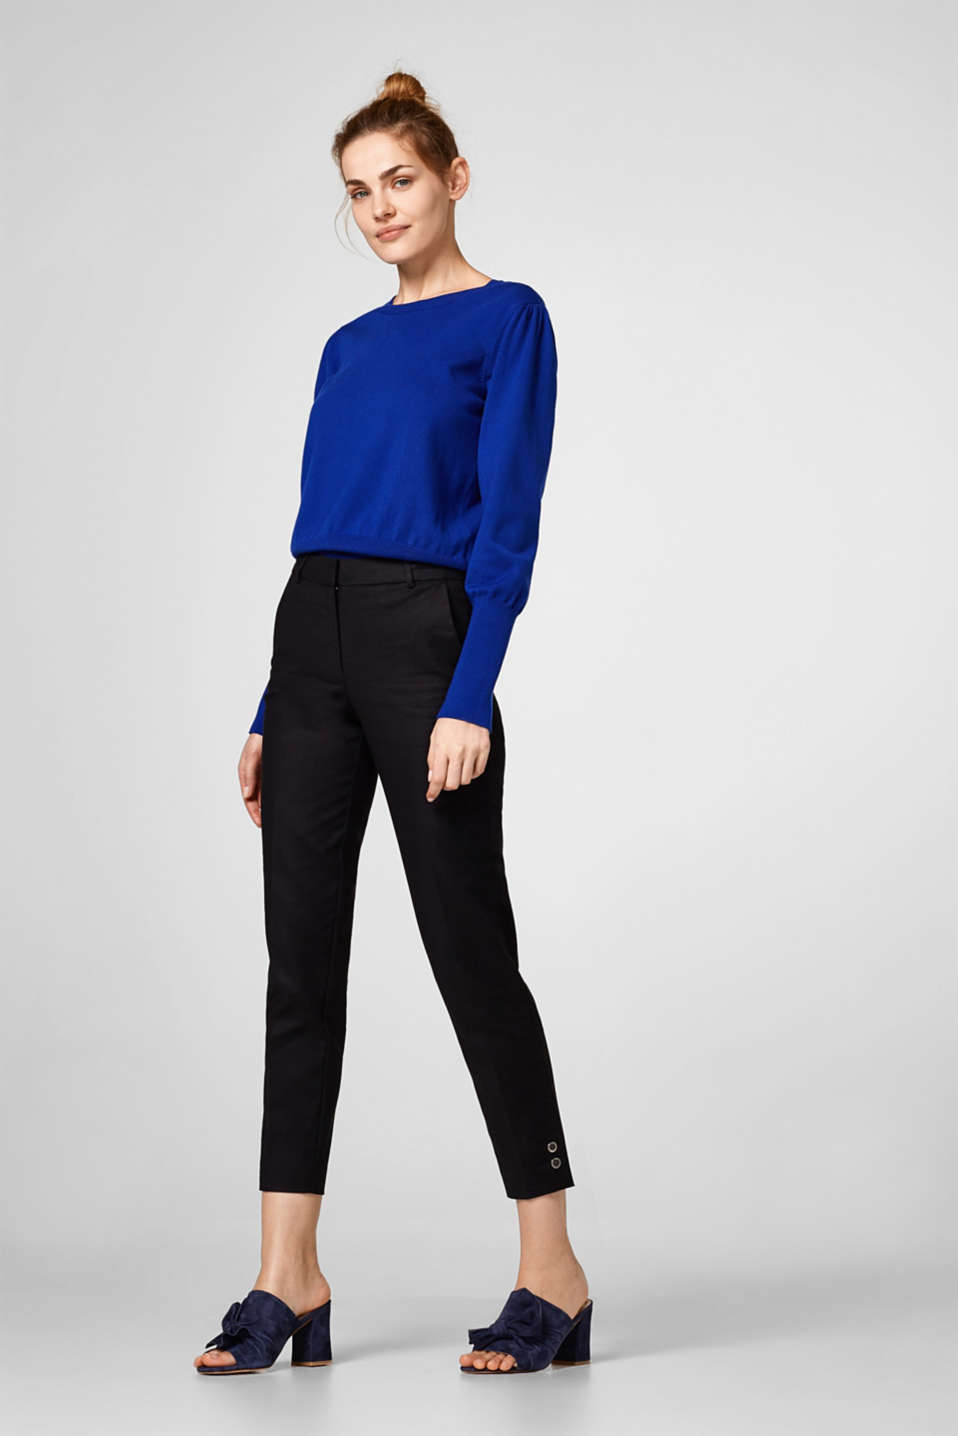 Cropped stretch trousers, buttons on hem